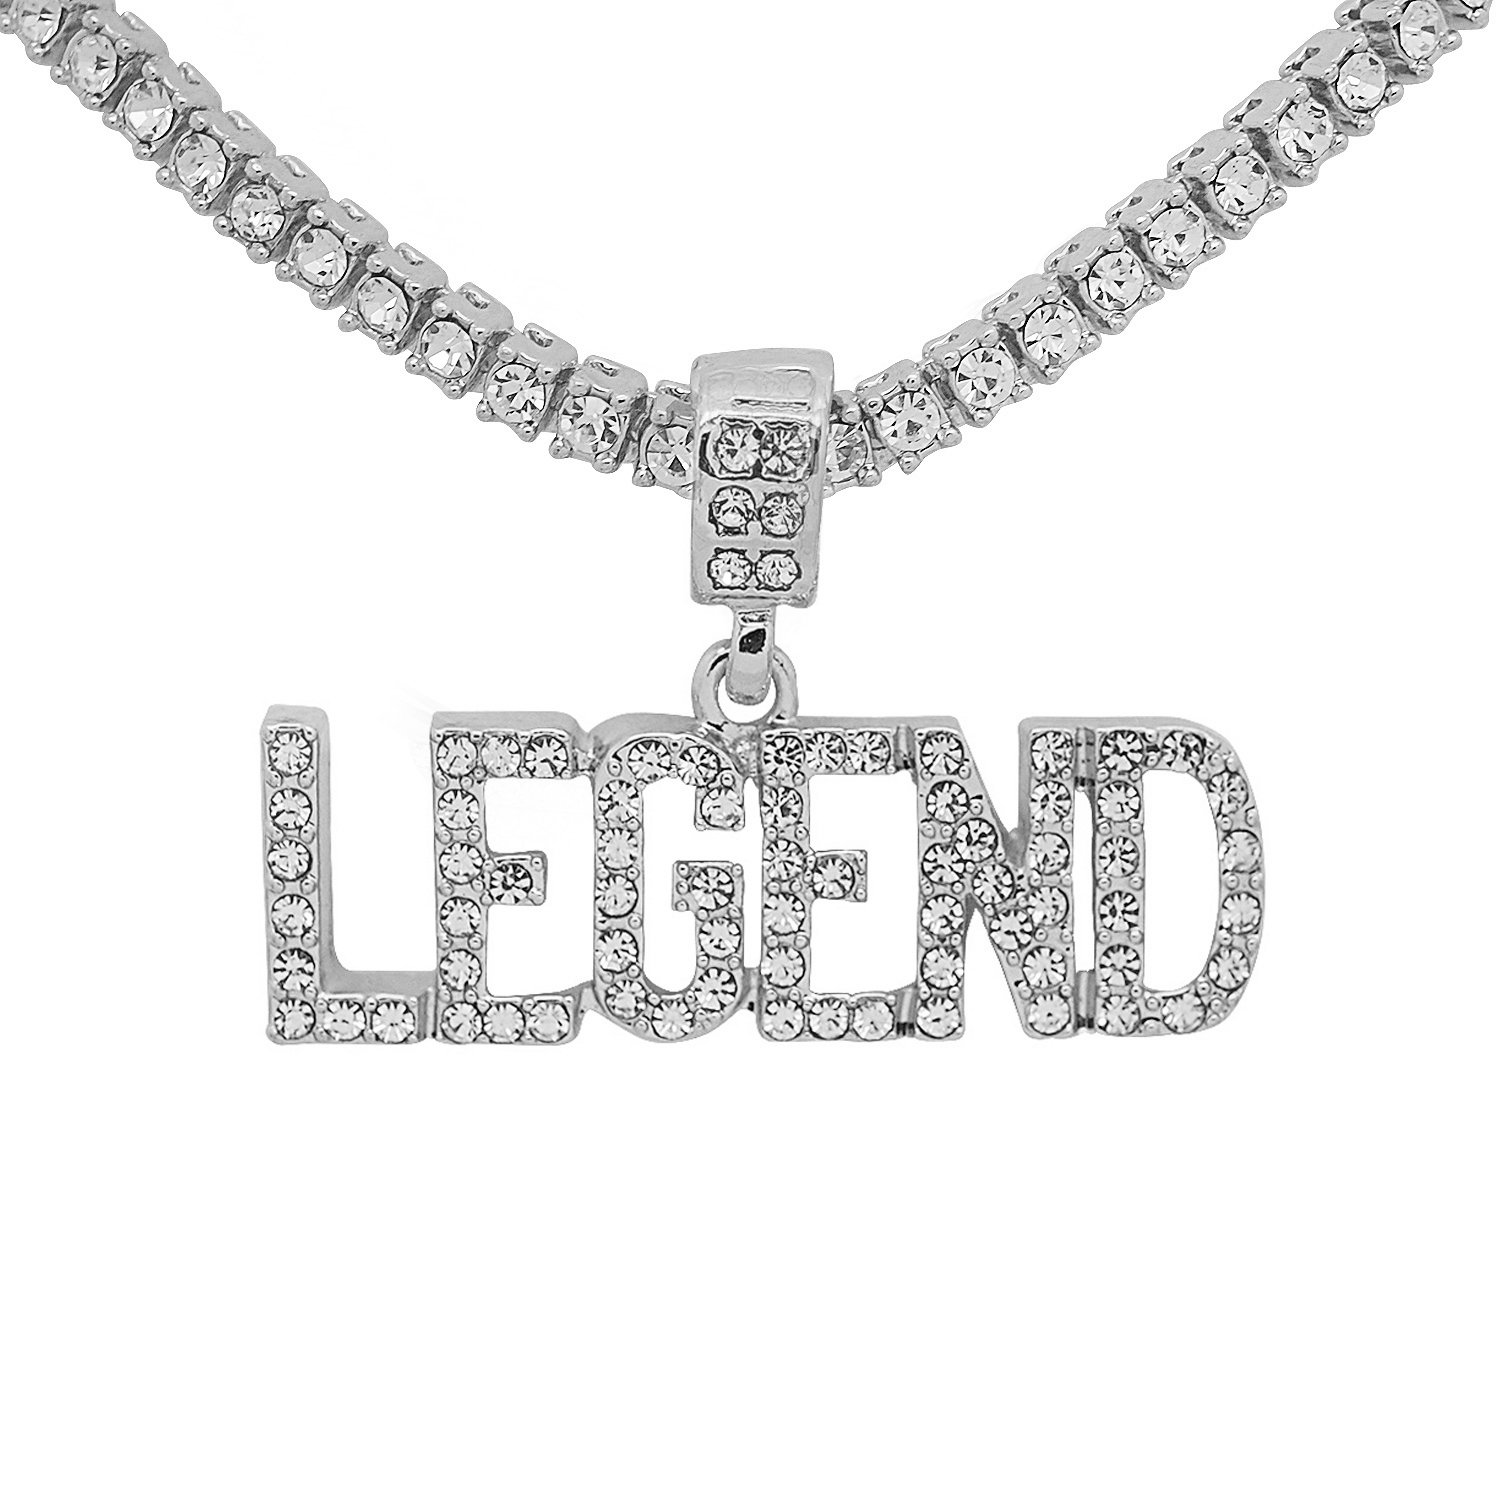 White Gold-Tone Hip Hop Bling Simulated CrystalLegend Letter Pendant with 24 Tennis Chain and 24 Rope Chain